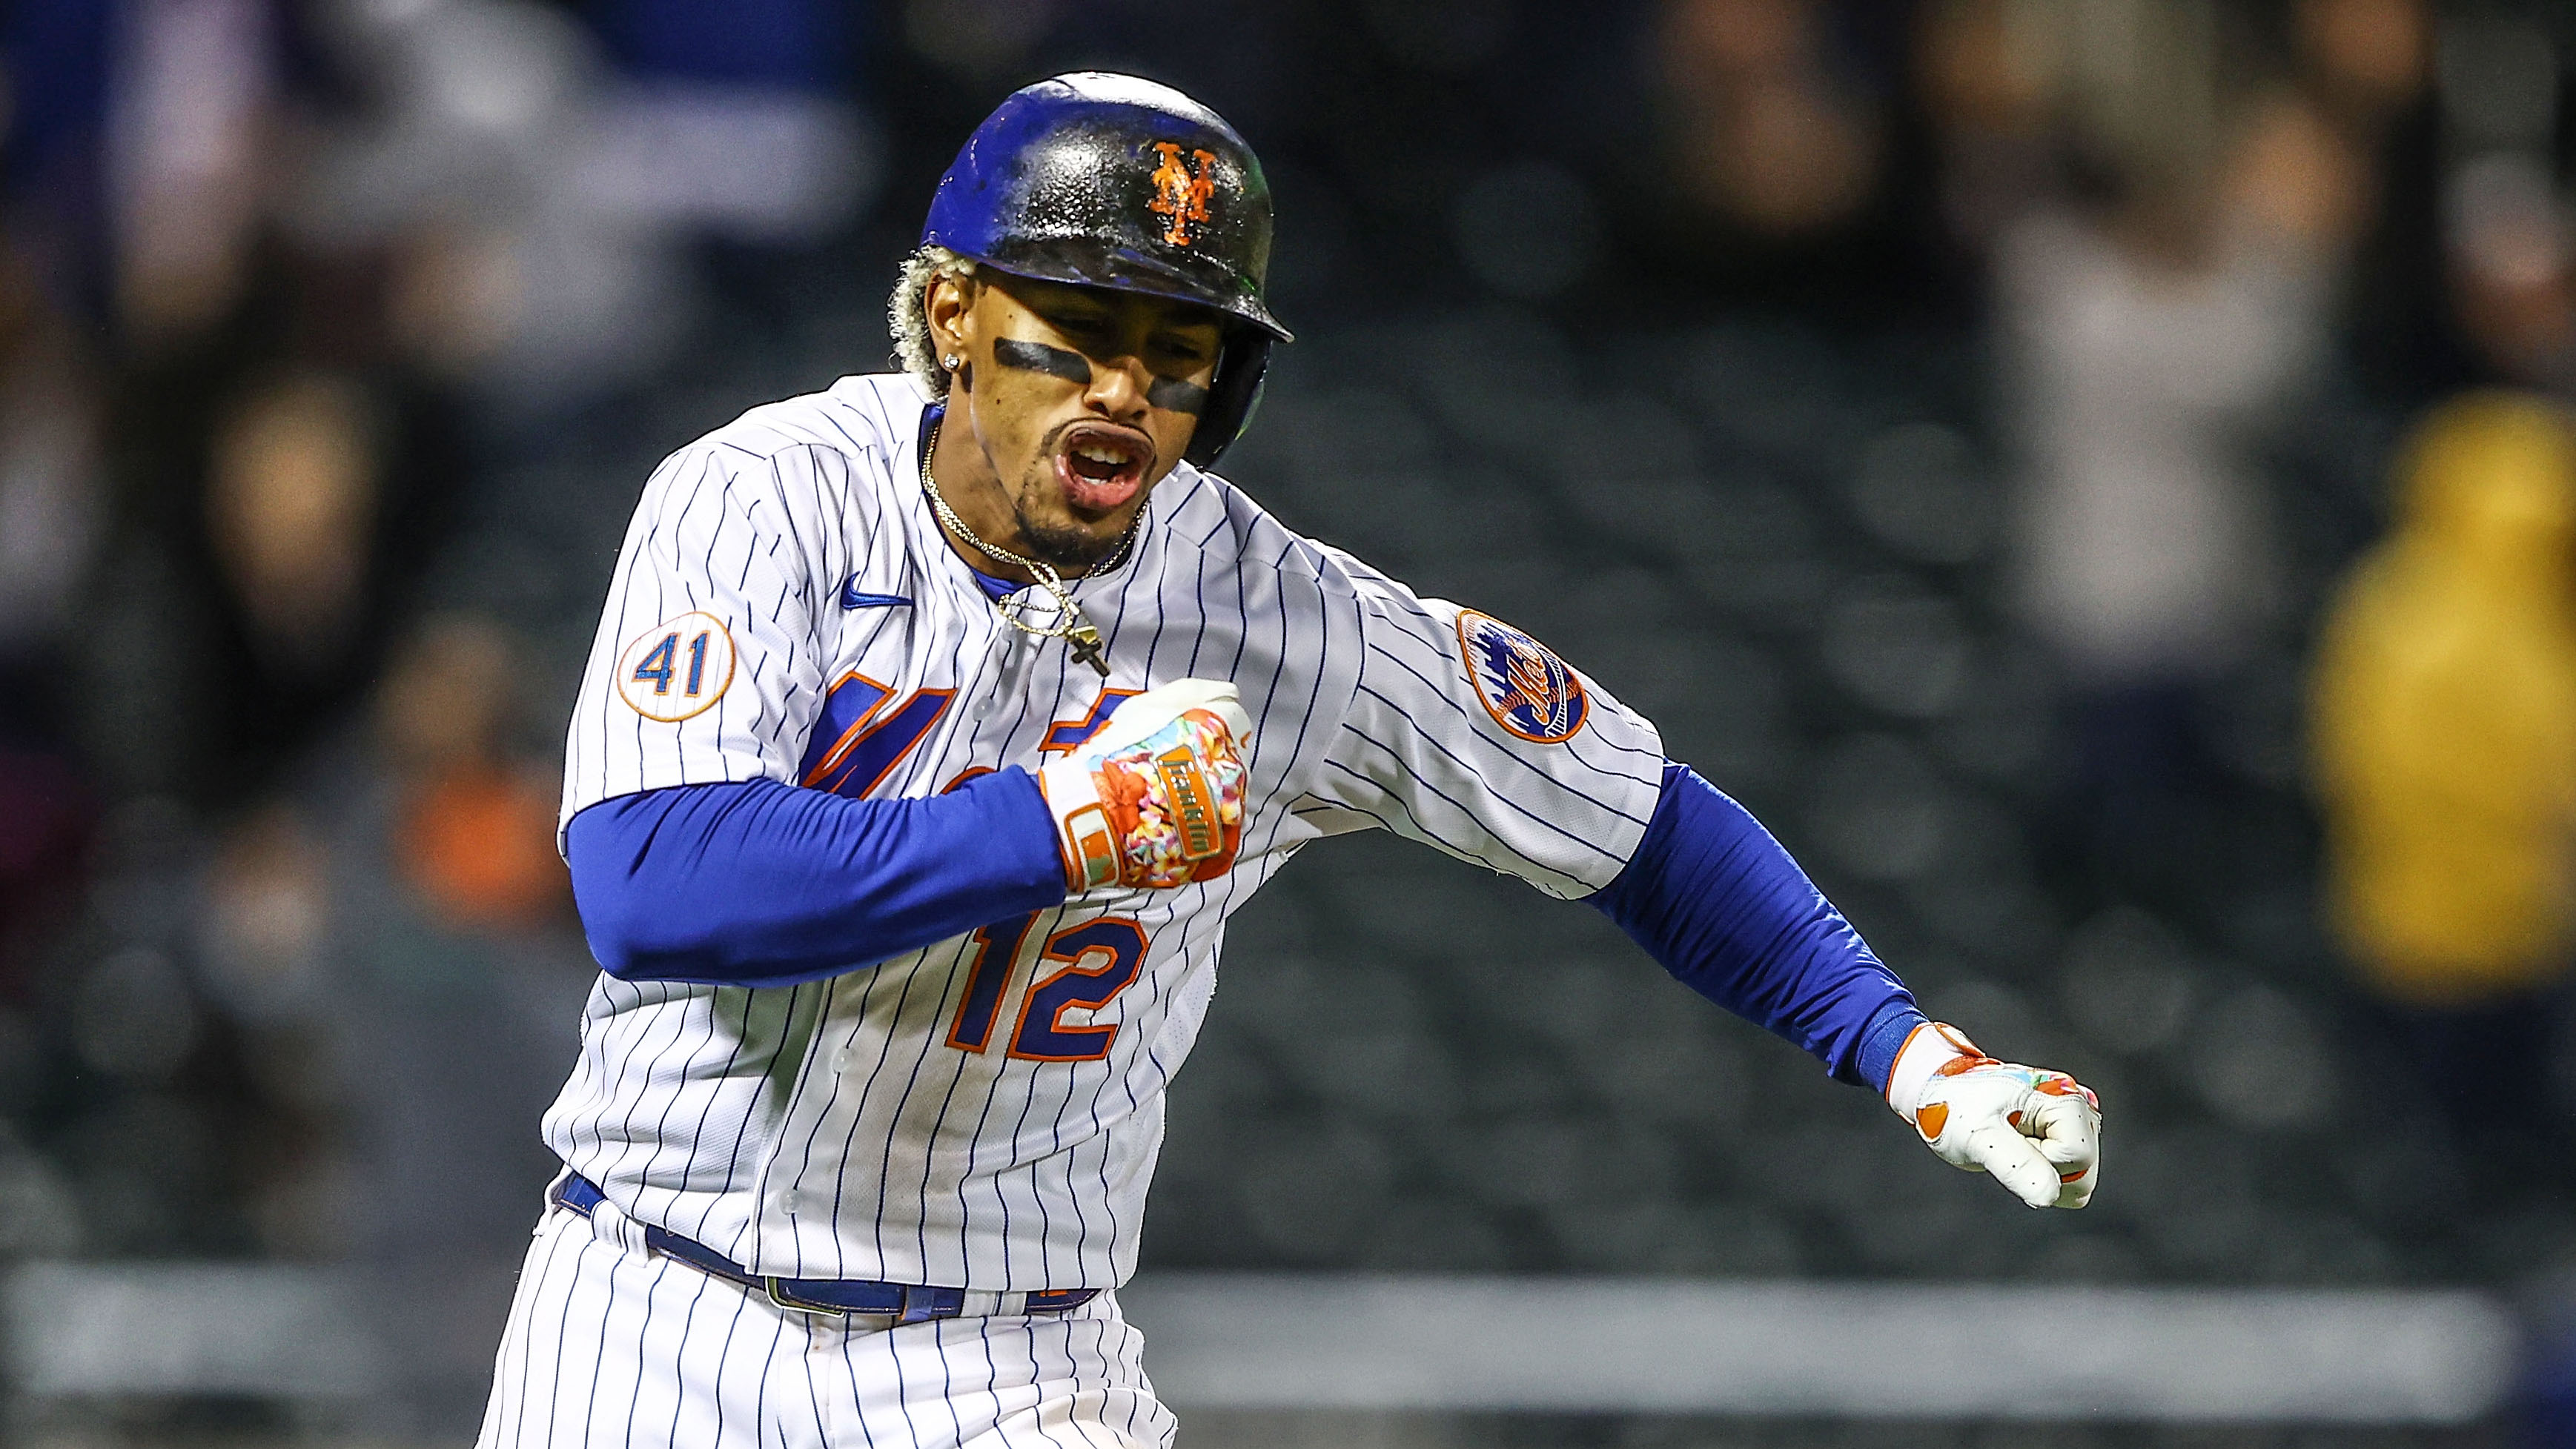 Francisco Lindor takes Mets on a wild ride, but winning cures all in New York